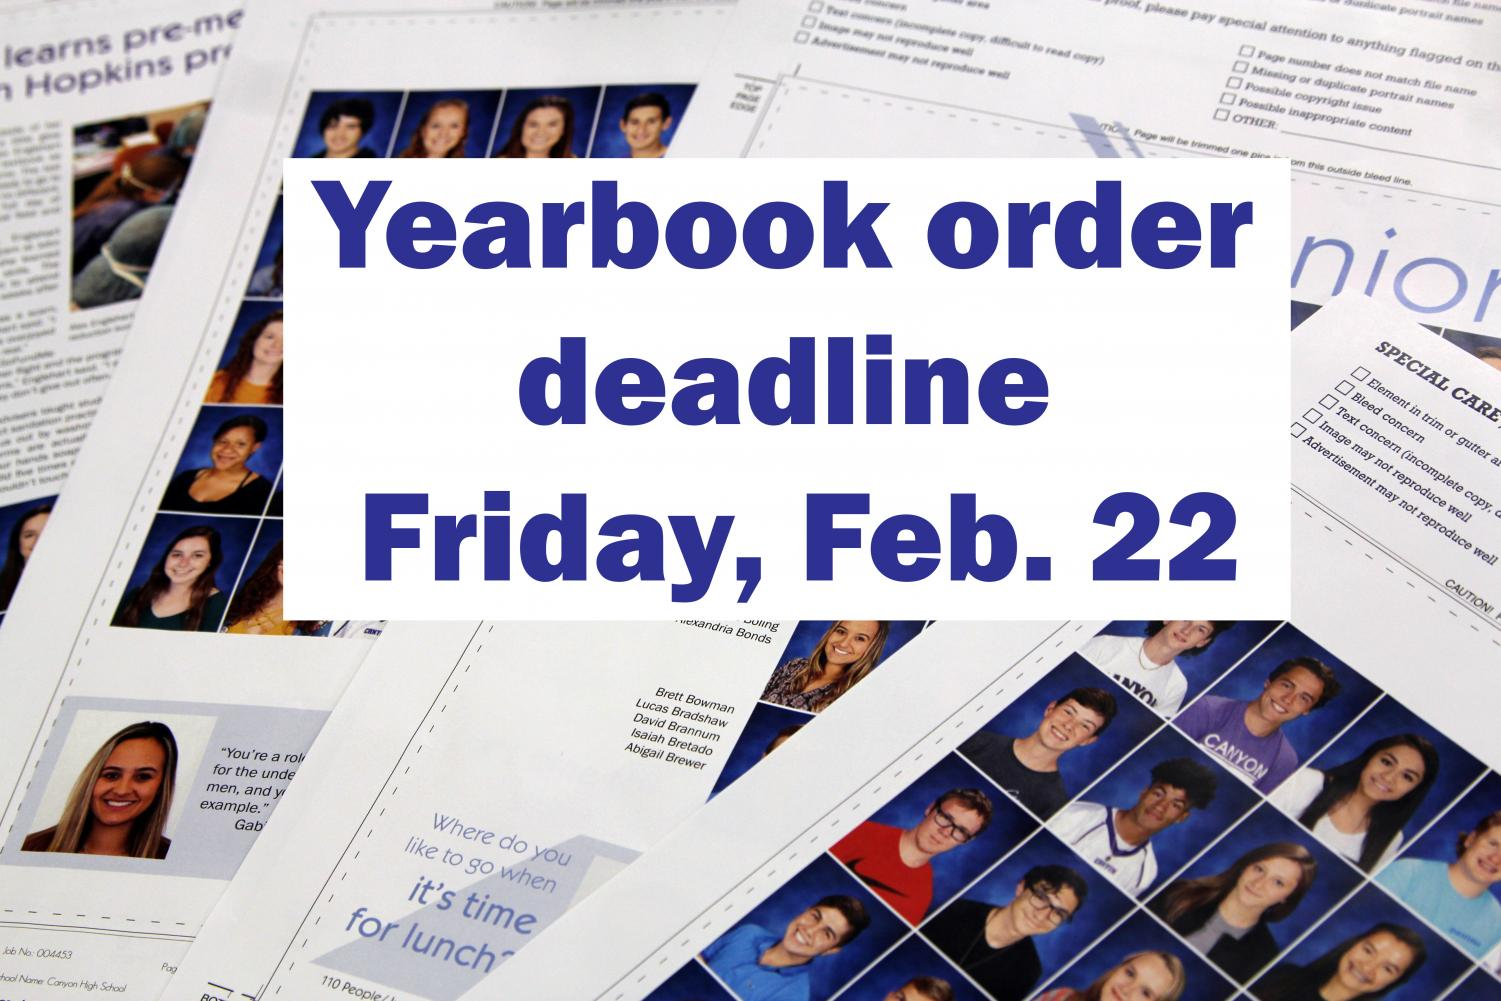 Students have through Feb. 22 to order a yearbook at jostensyearbooks.com.